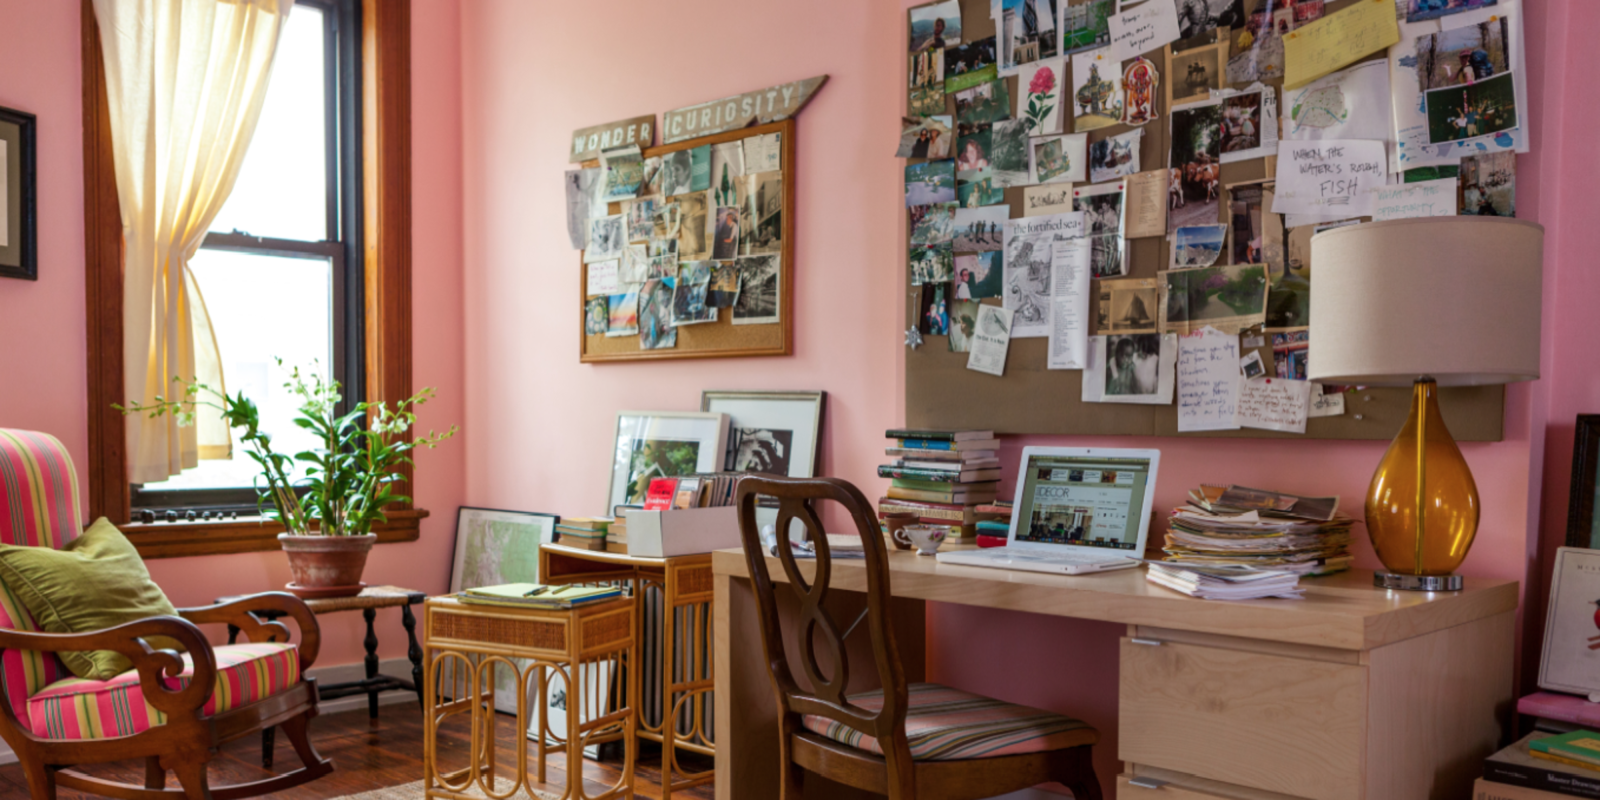 Collecting ideas for my new home office. I really like the honey wood with the pink walls and the lived in look .